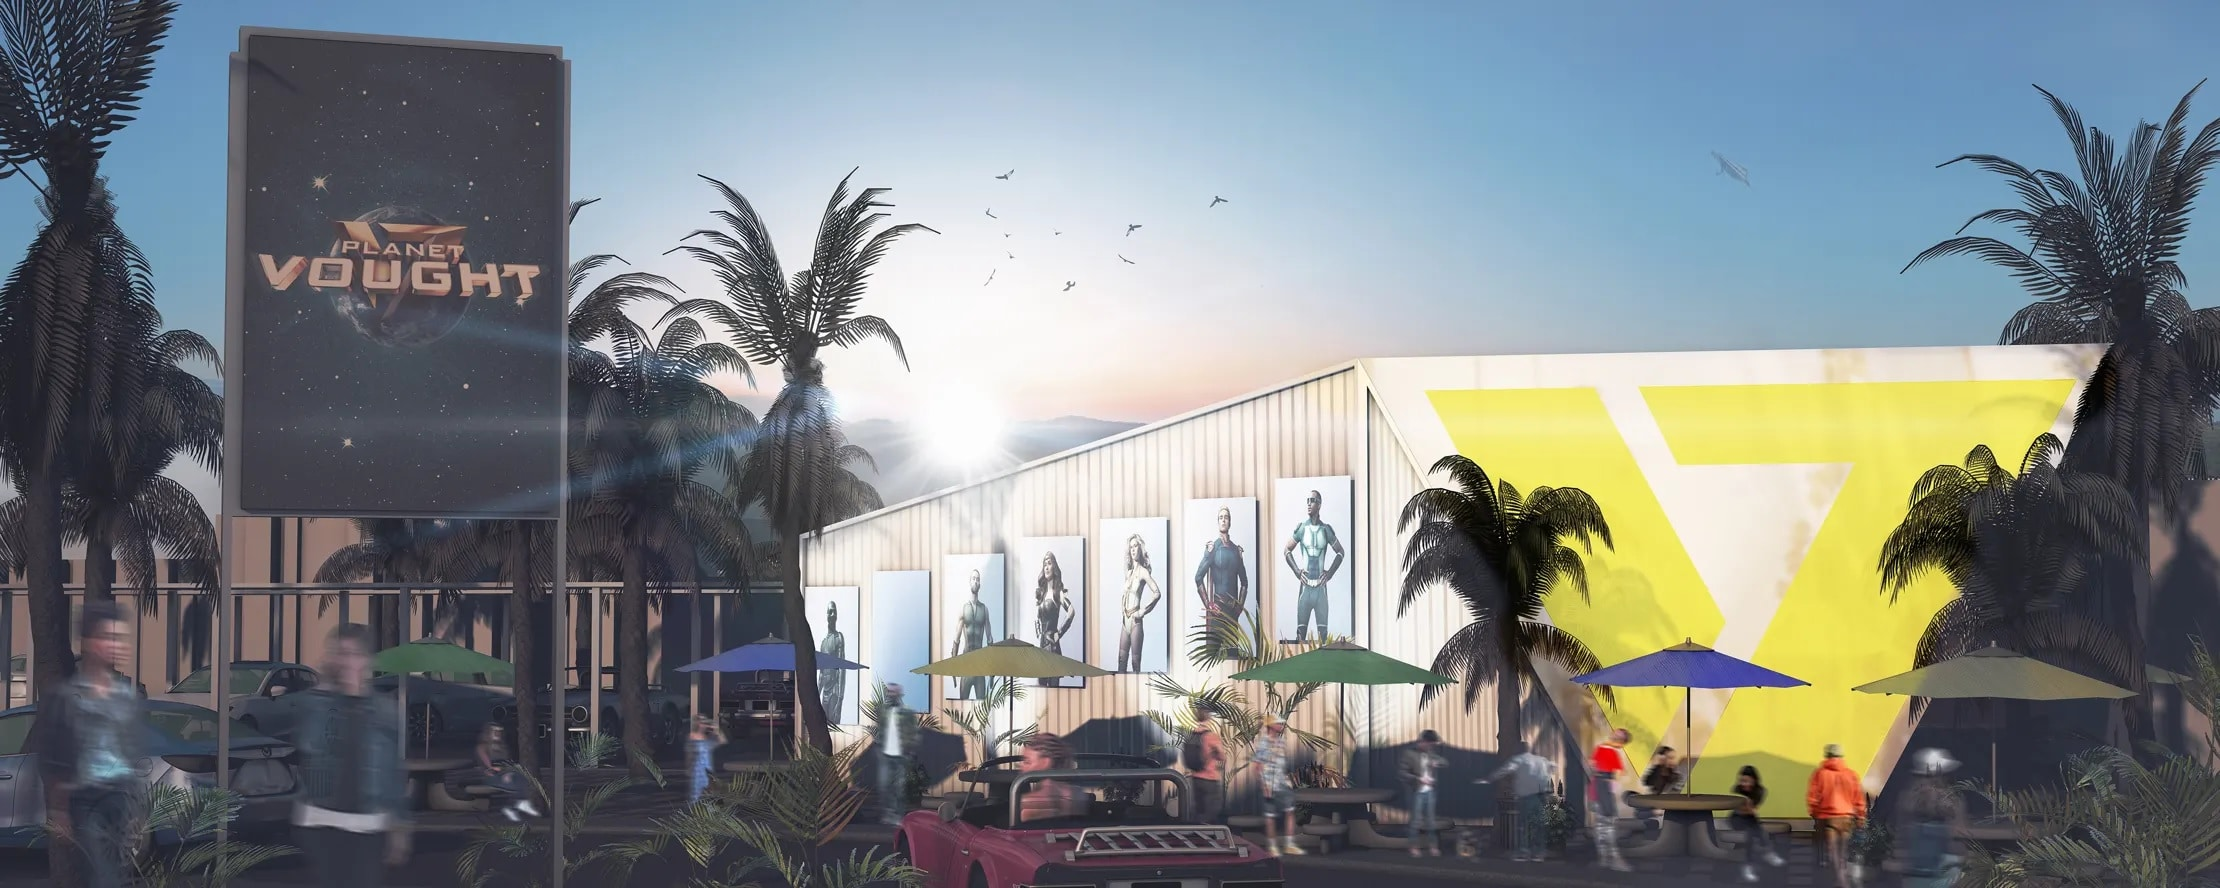 The Boys is opening a Planet Vought pop-up restaurant in Hollywood 17